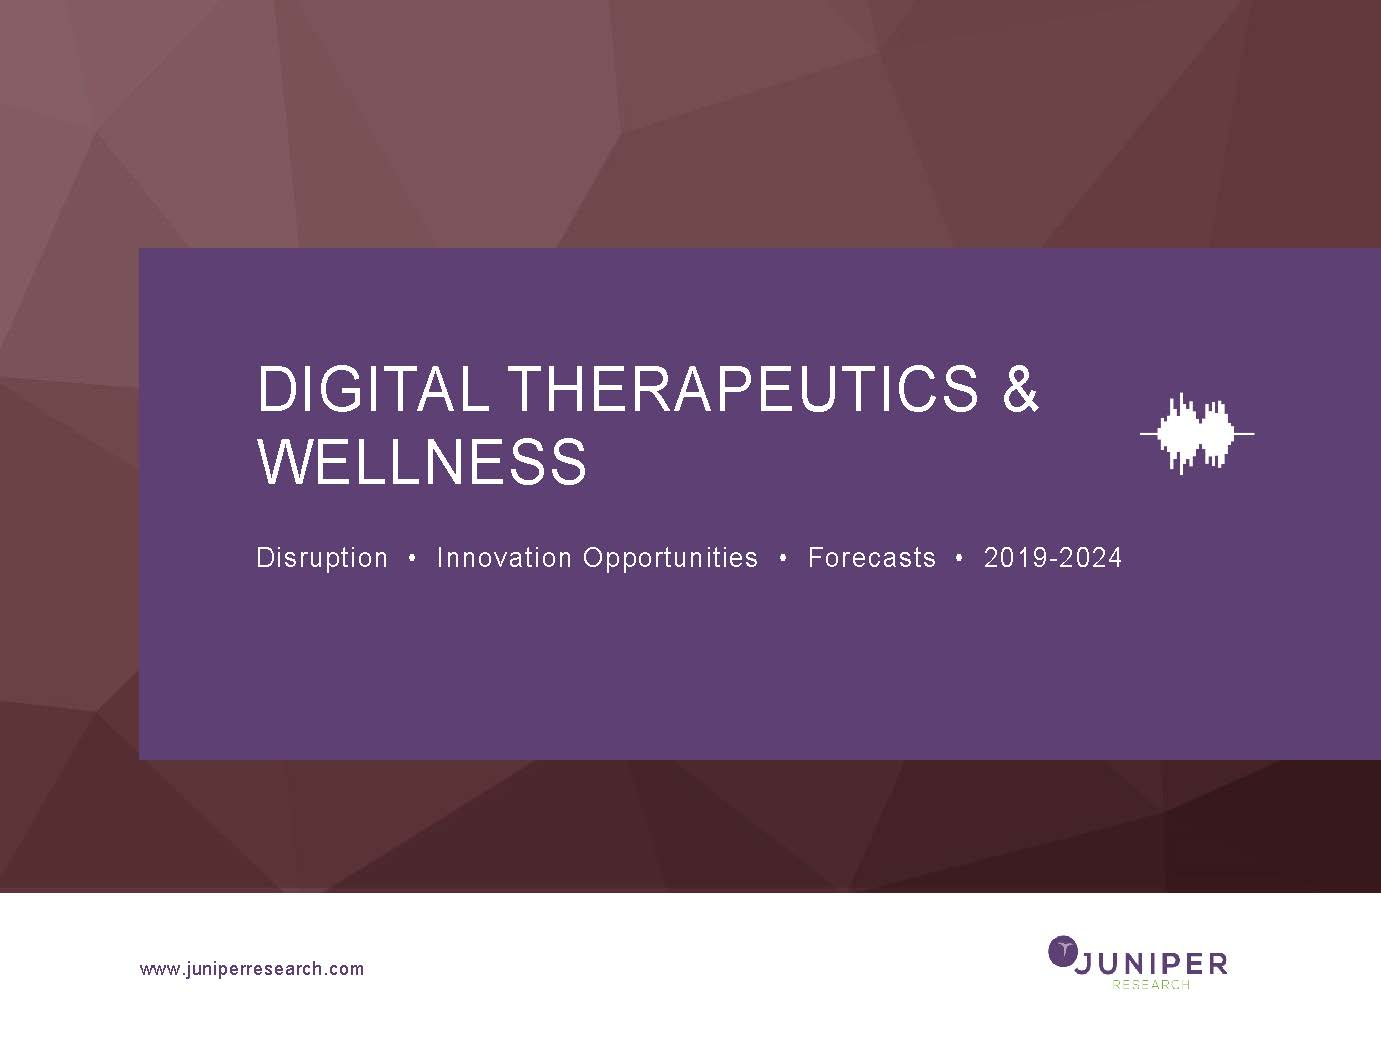 Digital Therapeutics & Wellness: Disruption, Innovation Opportunities & Forecasts 2019-2024